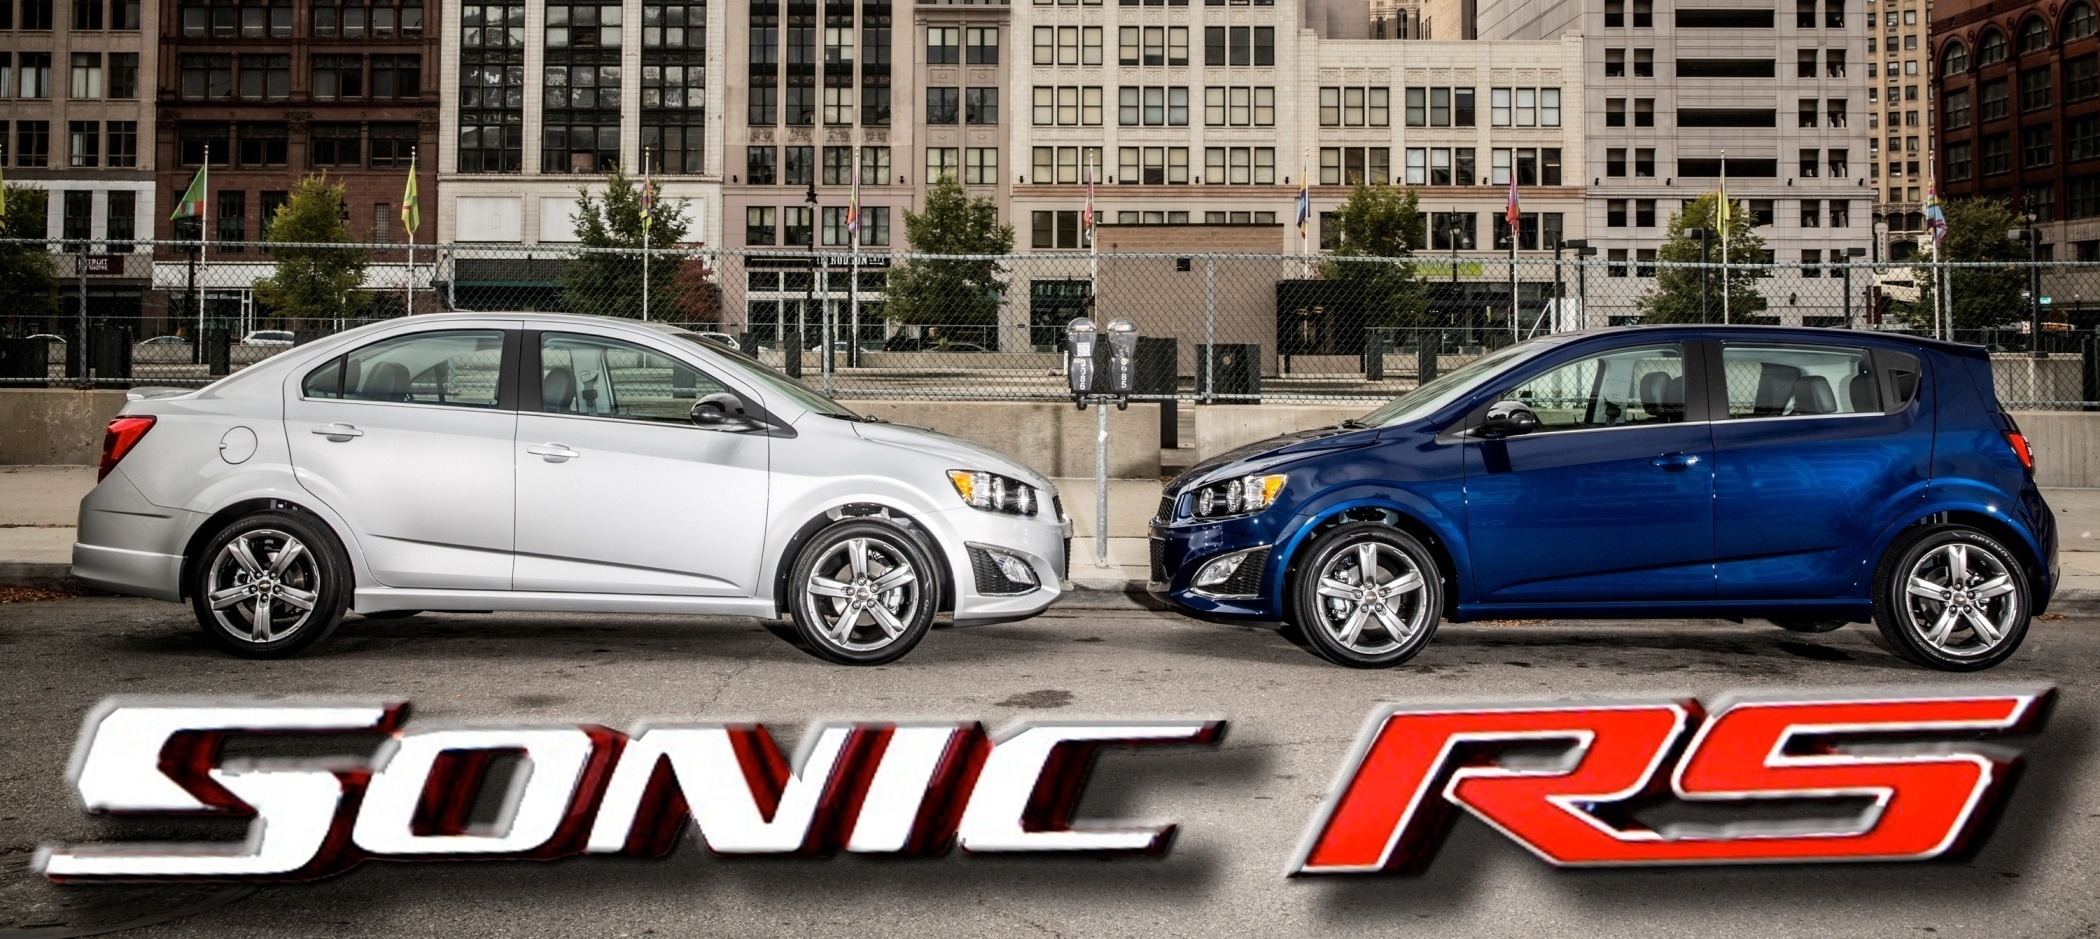 Chevy Sonic Rs Sedan And Ltz Dusk Join Cool Rs Hatch With Dark Rims Body Kit And Sporty Handling Tune